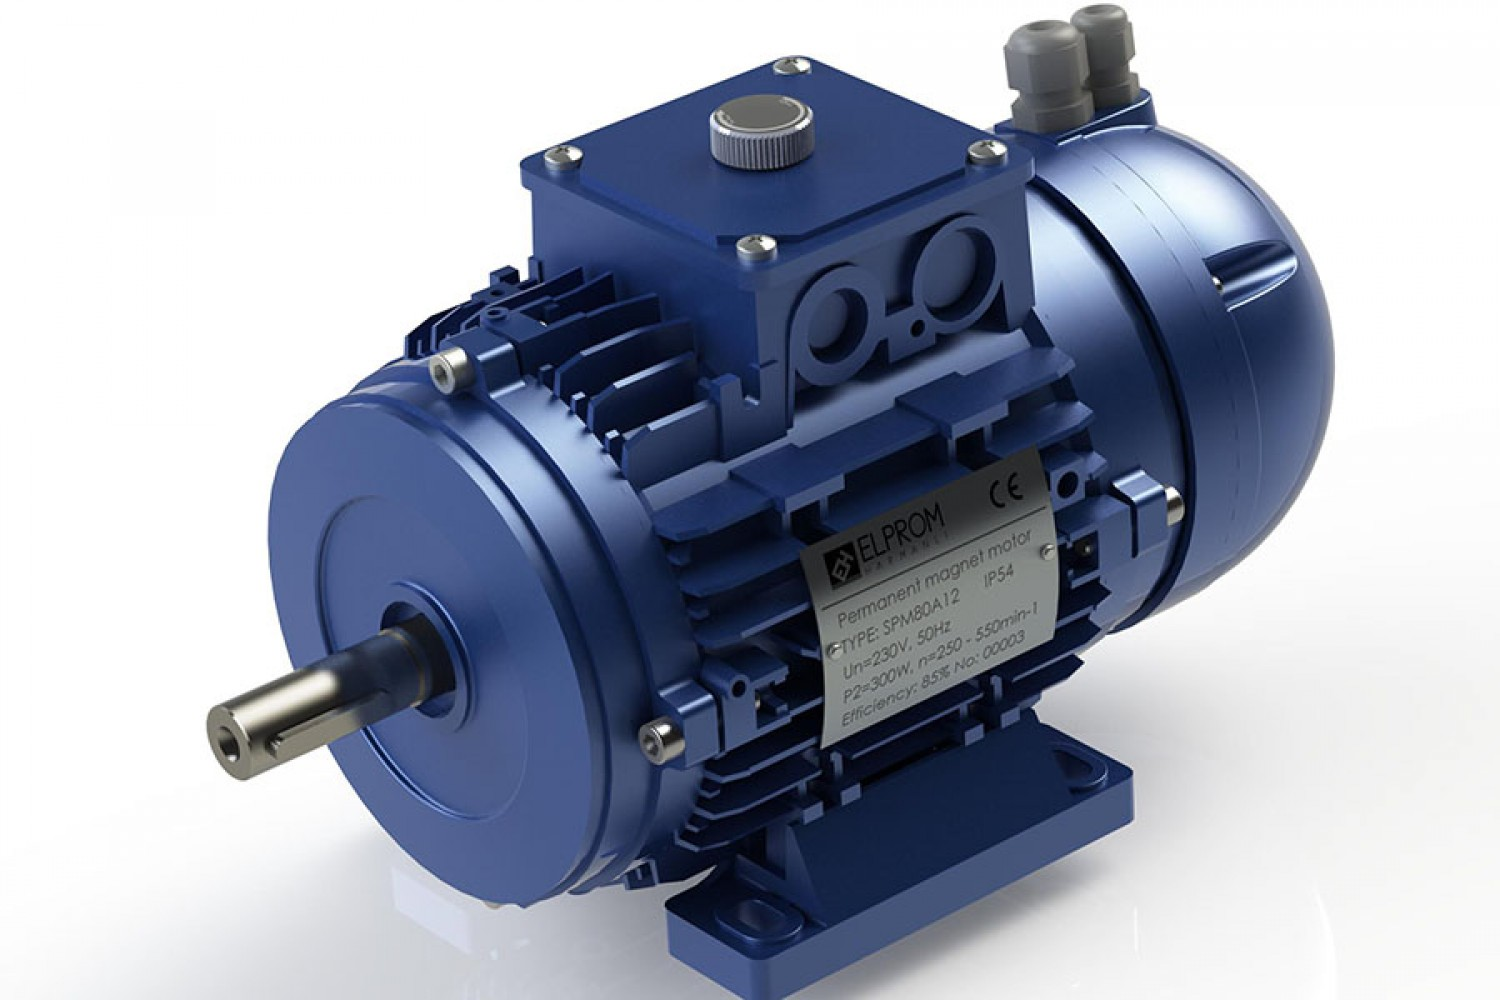 MOTORS WITH BUILT-IN INVERTER